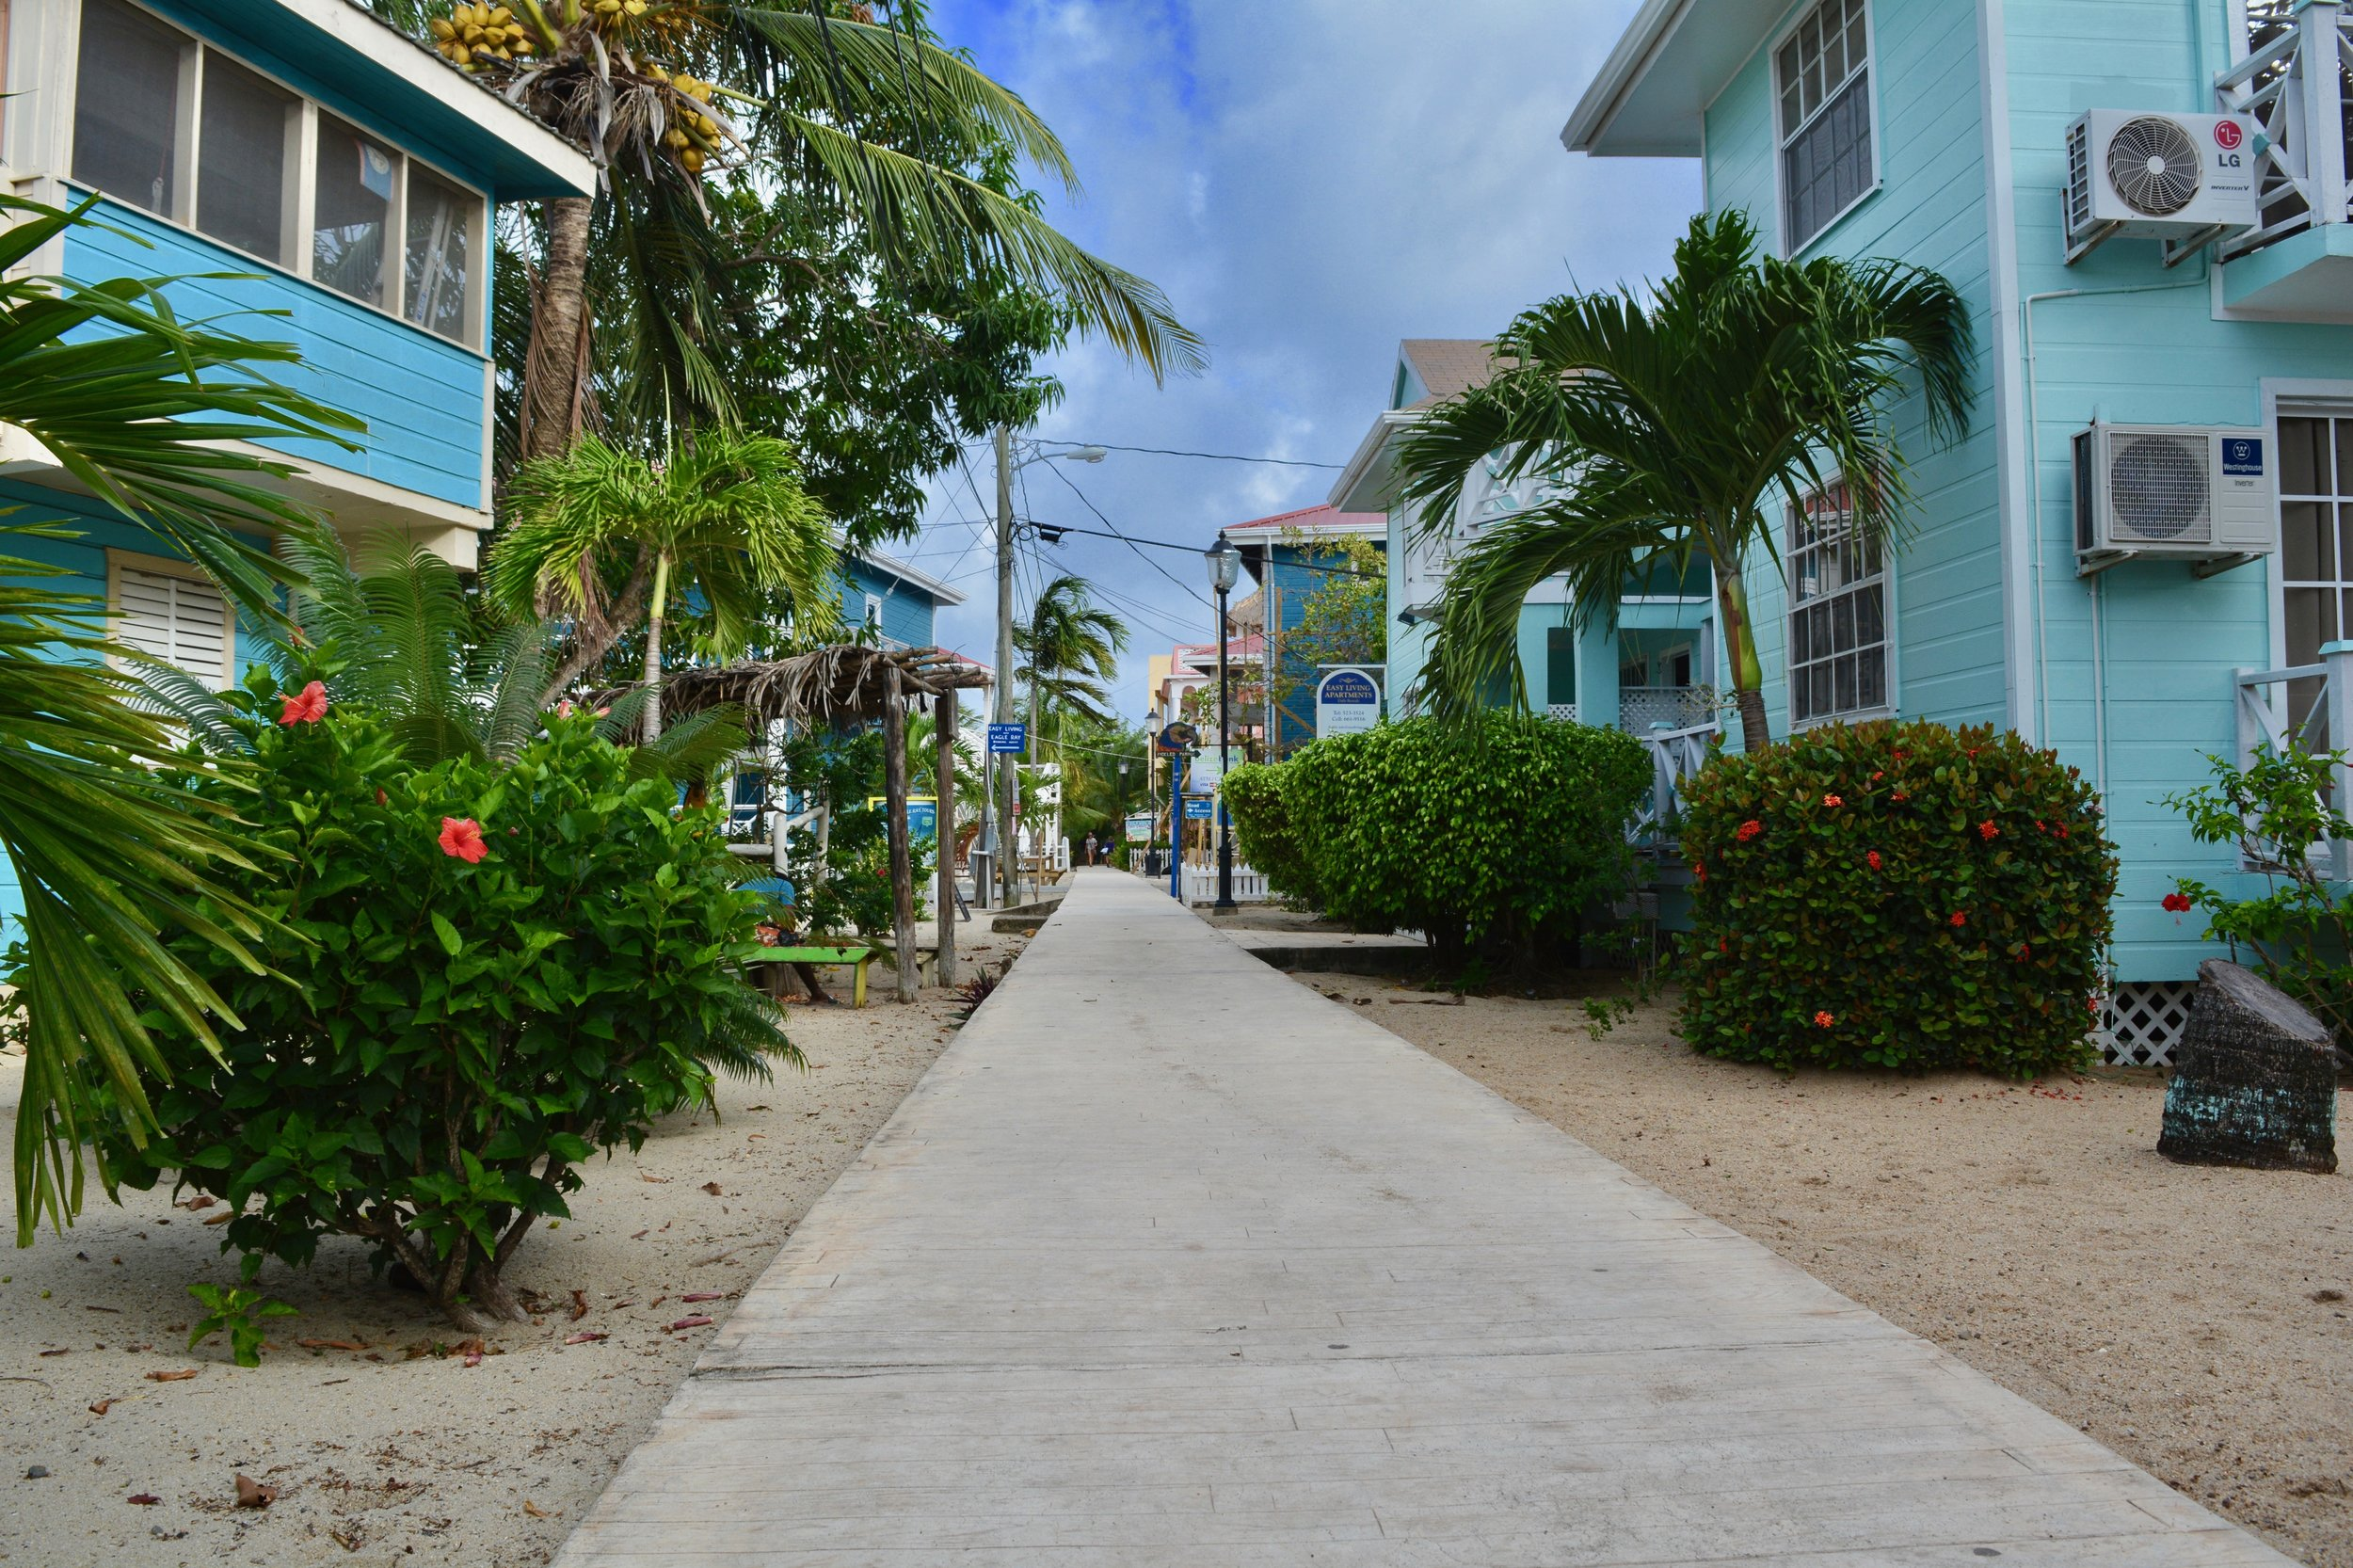 The Placencia Sidewalk